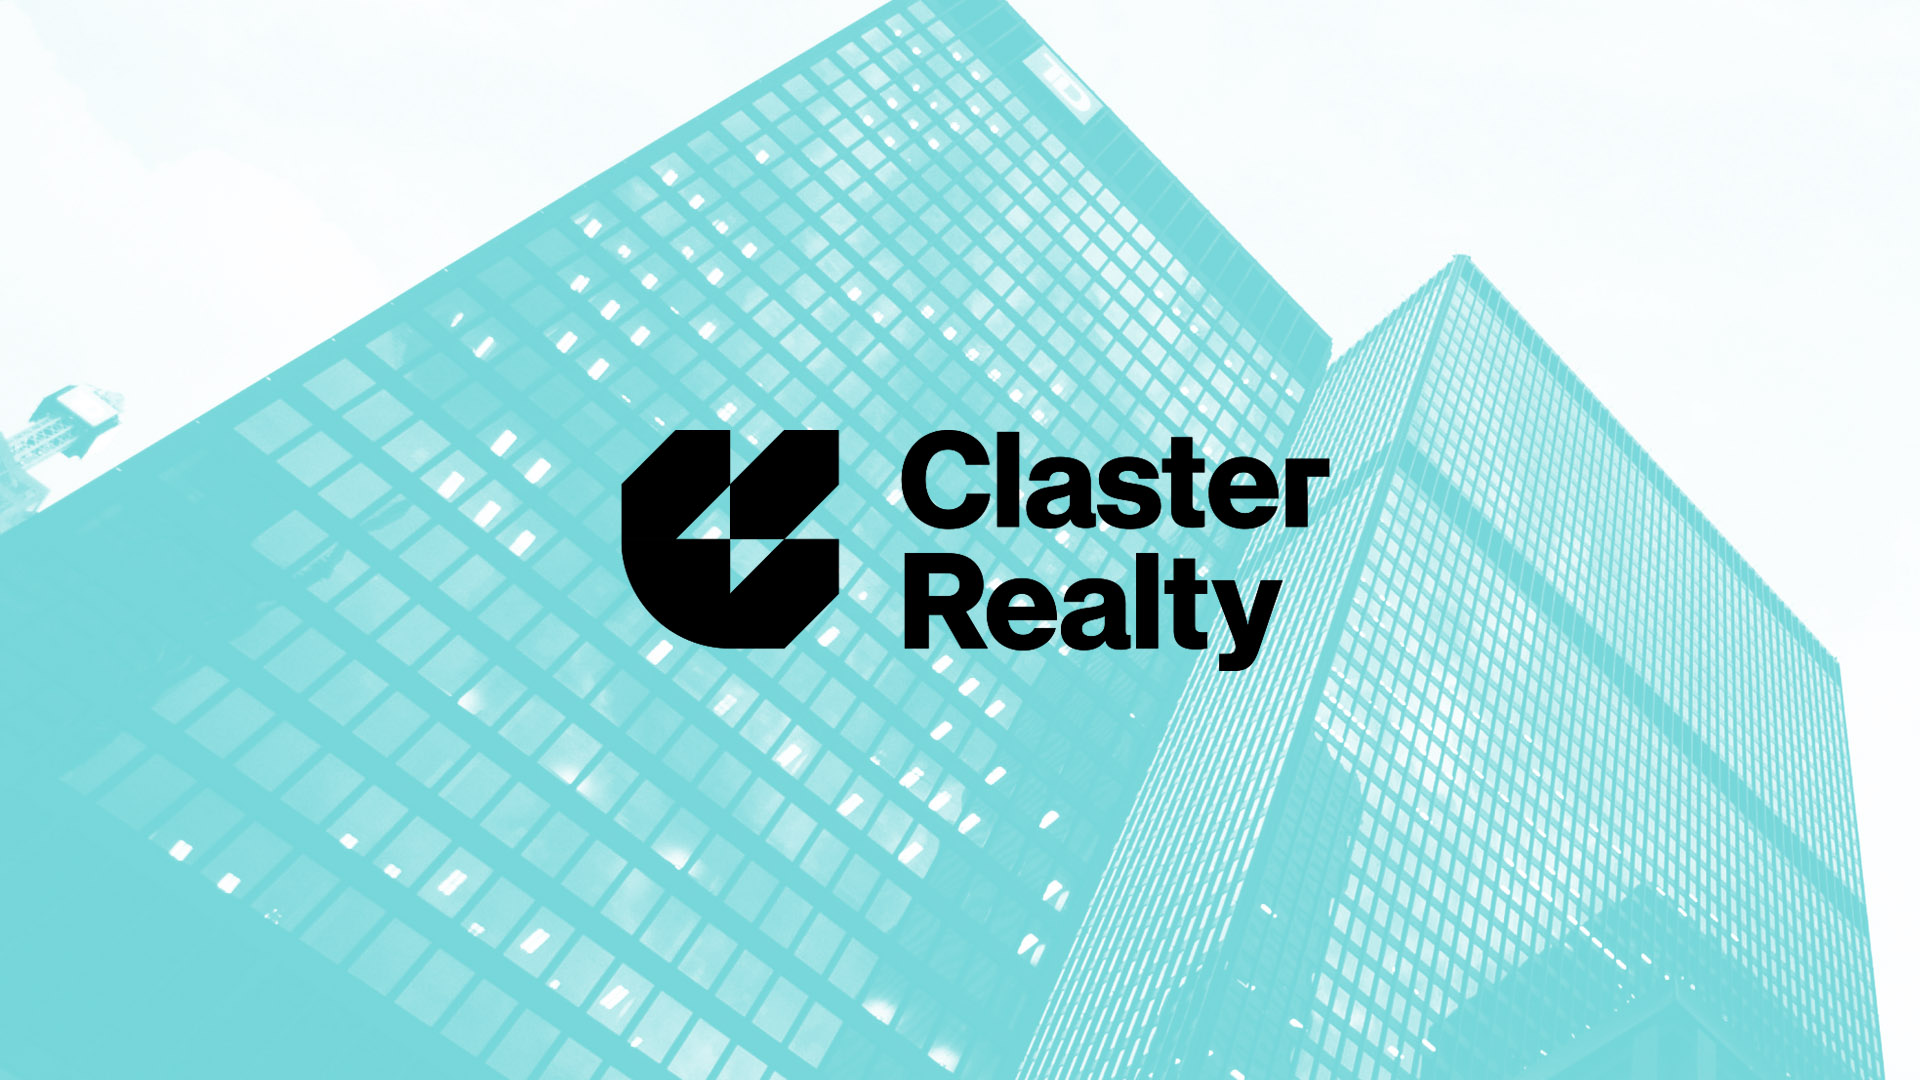 claster_realty